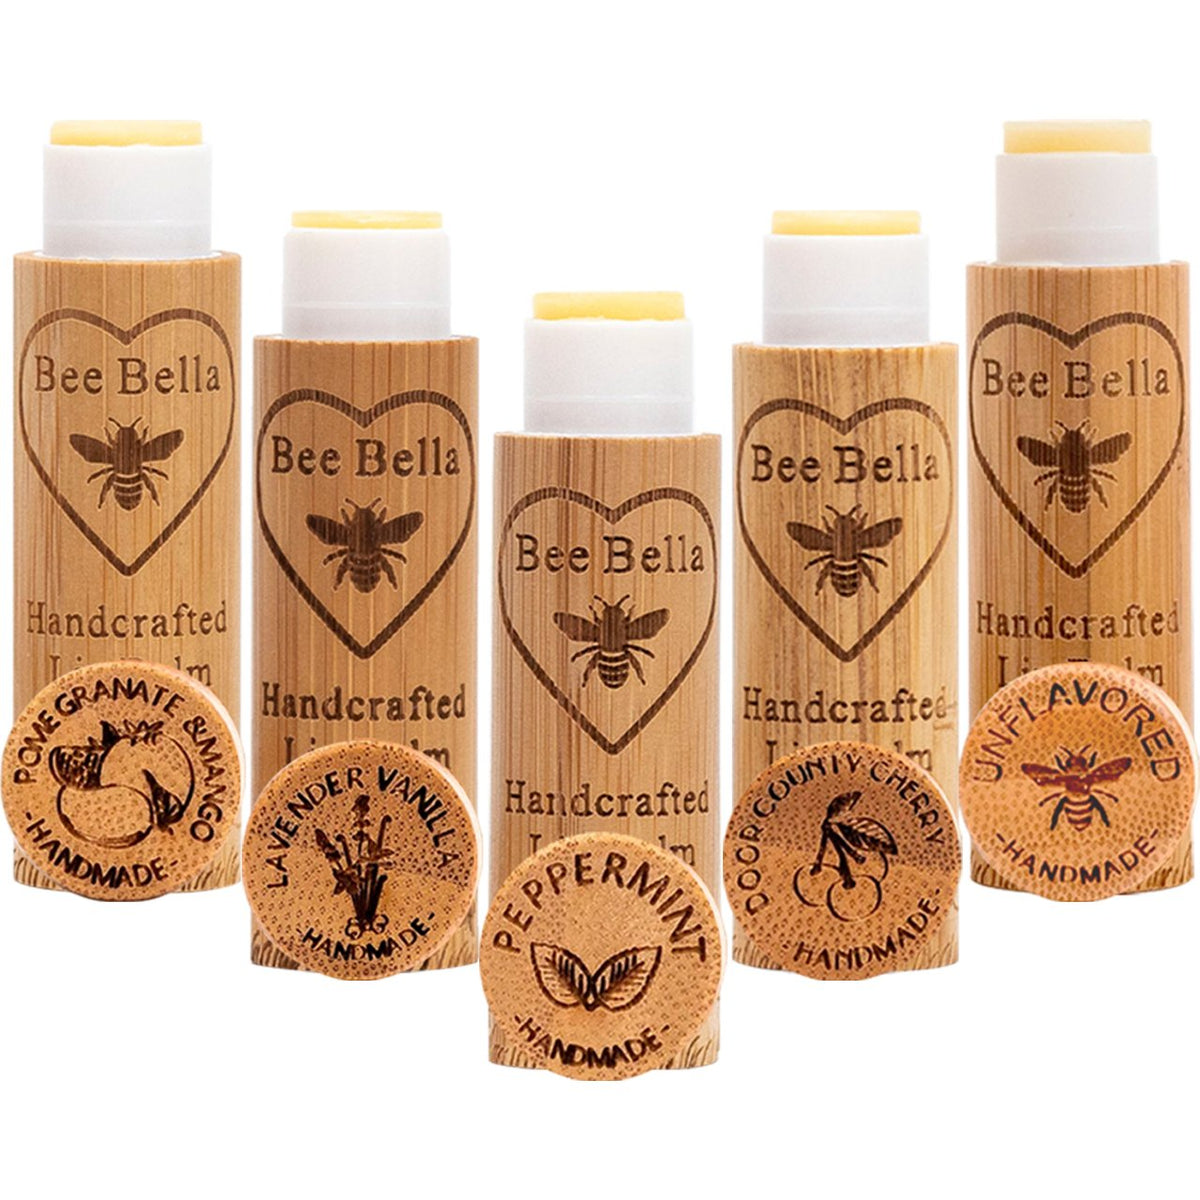 Bee Bella Five Flavours Labels Lip Balm